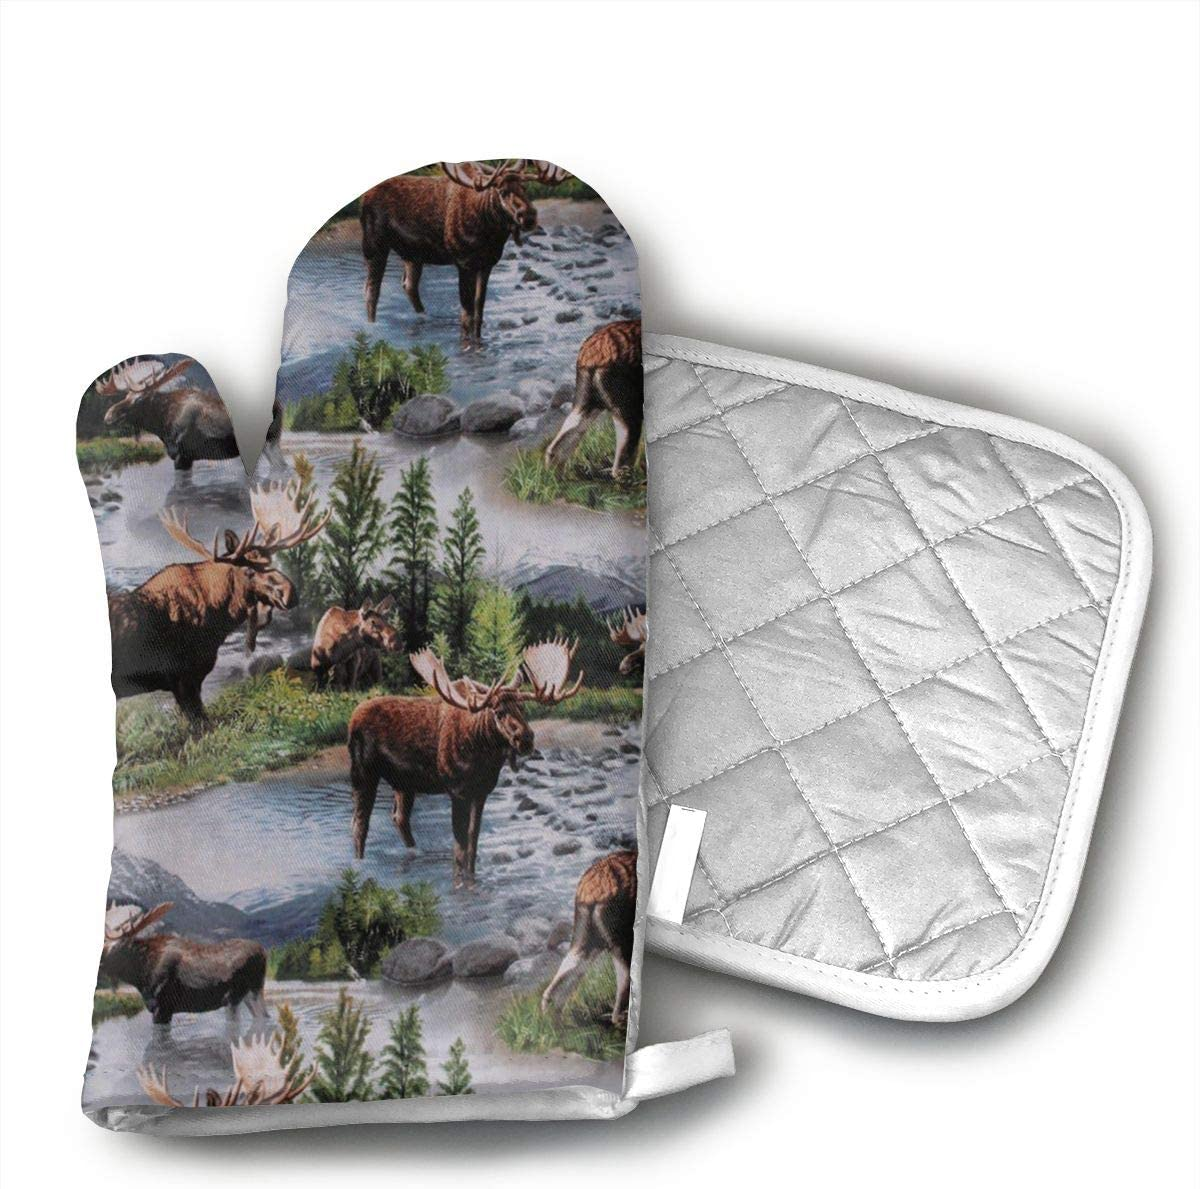 Ruwoi6 Bull Moose Nature Scenic Wildlife Animals Lake Oven Mitts Heat Resistant Cooking Gloves Non-Slip Grip Pot Holders for Kitchen Oven, BBQ Grill and Fire Pits Ideal for Cooking.